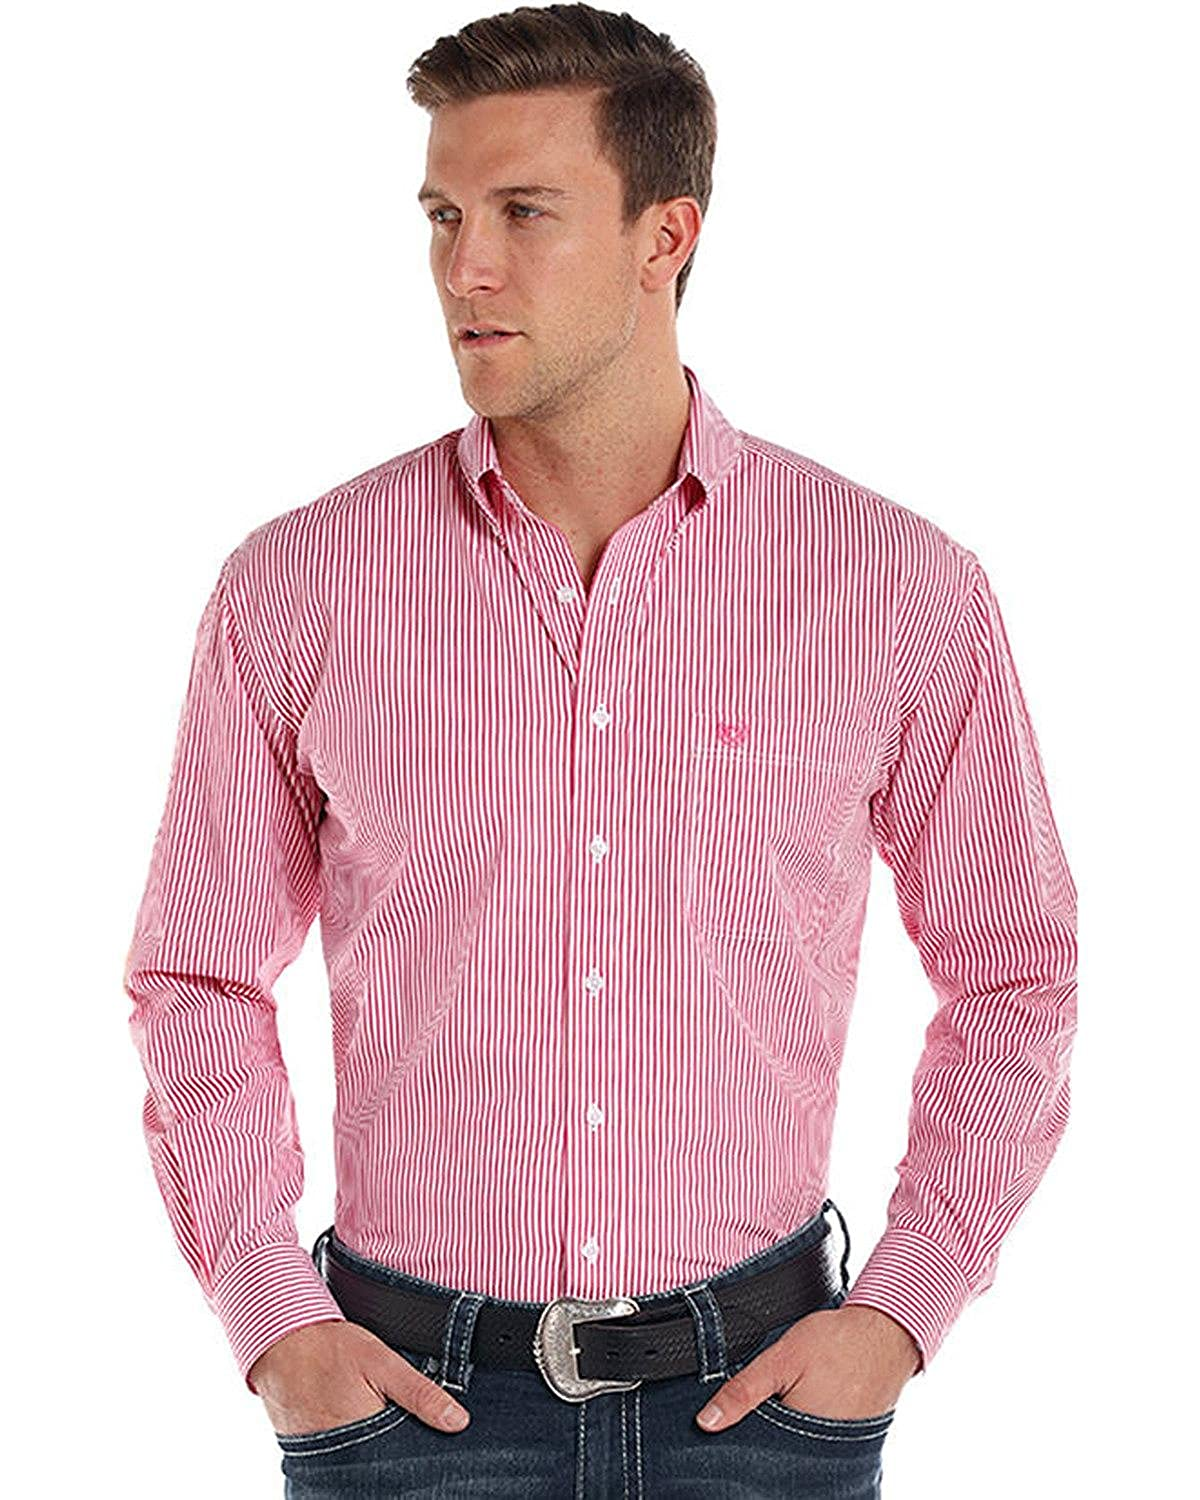 Panhandle Mens Rough Stock by Alford Classic Sport Stripe Shirt